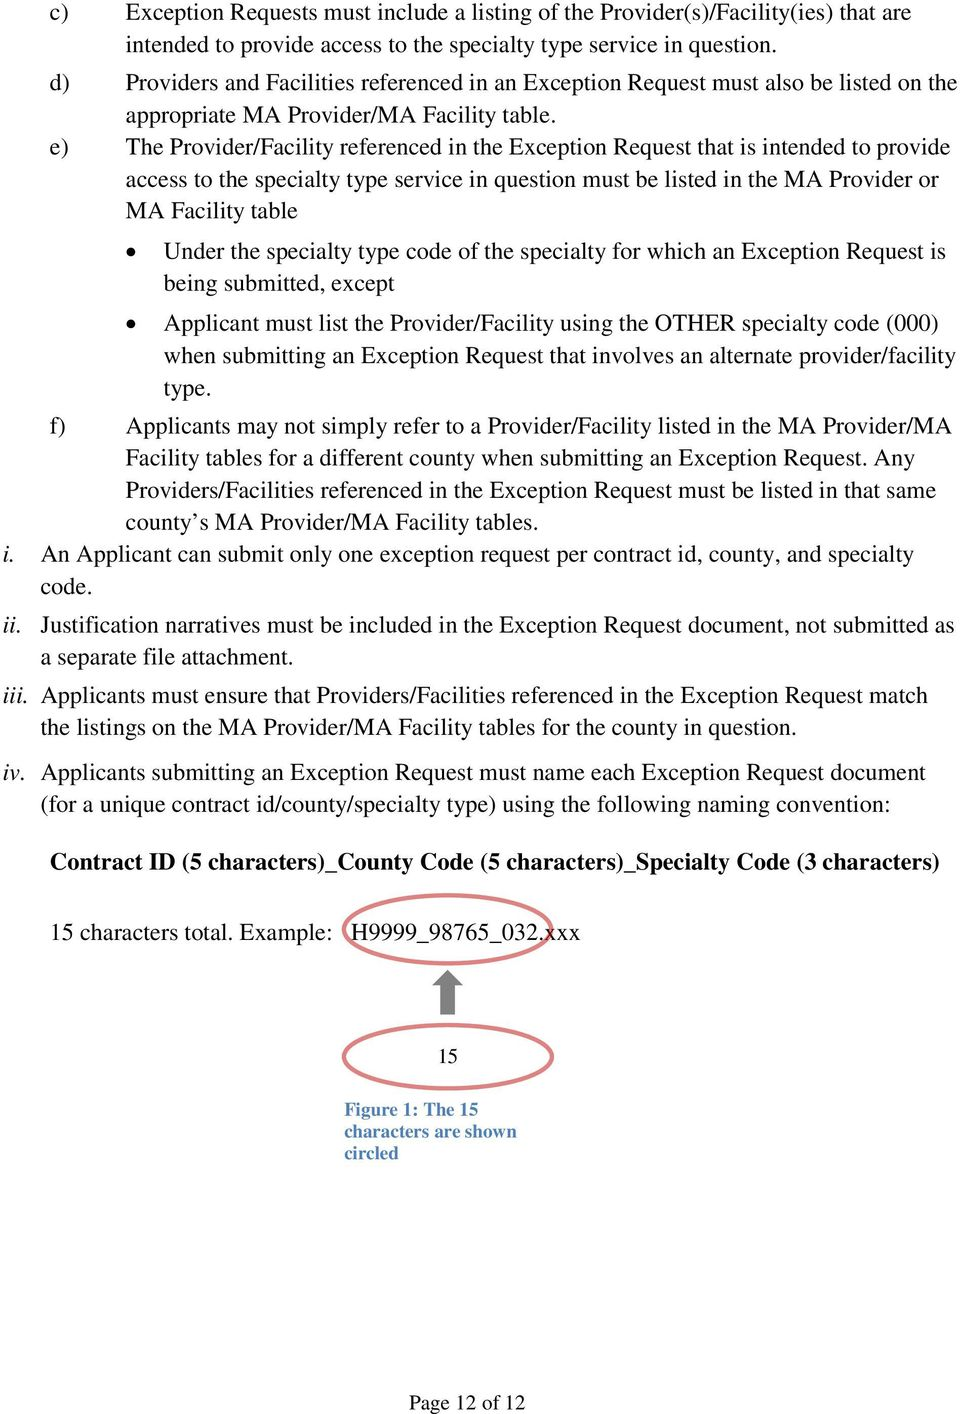 e) The Provider/Facility referenced in the Exception Request that is intended to provide access to the specialty type service in question must be listed in the MA Provider or MA Facility table Under